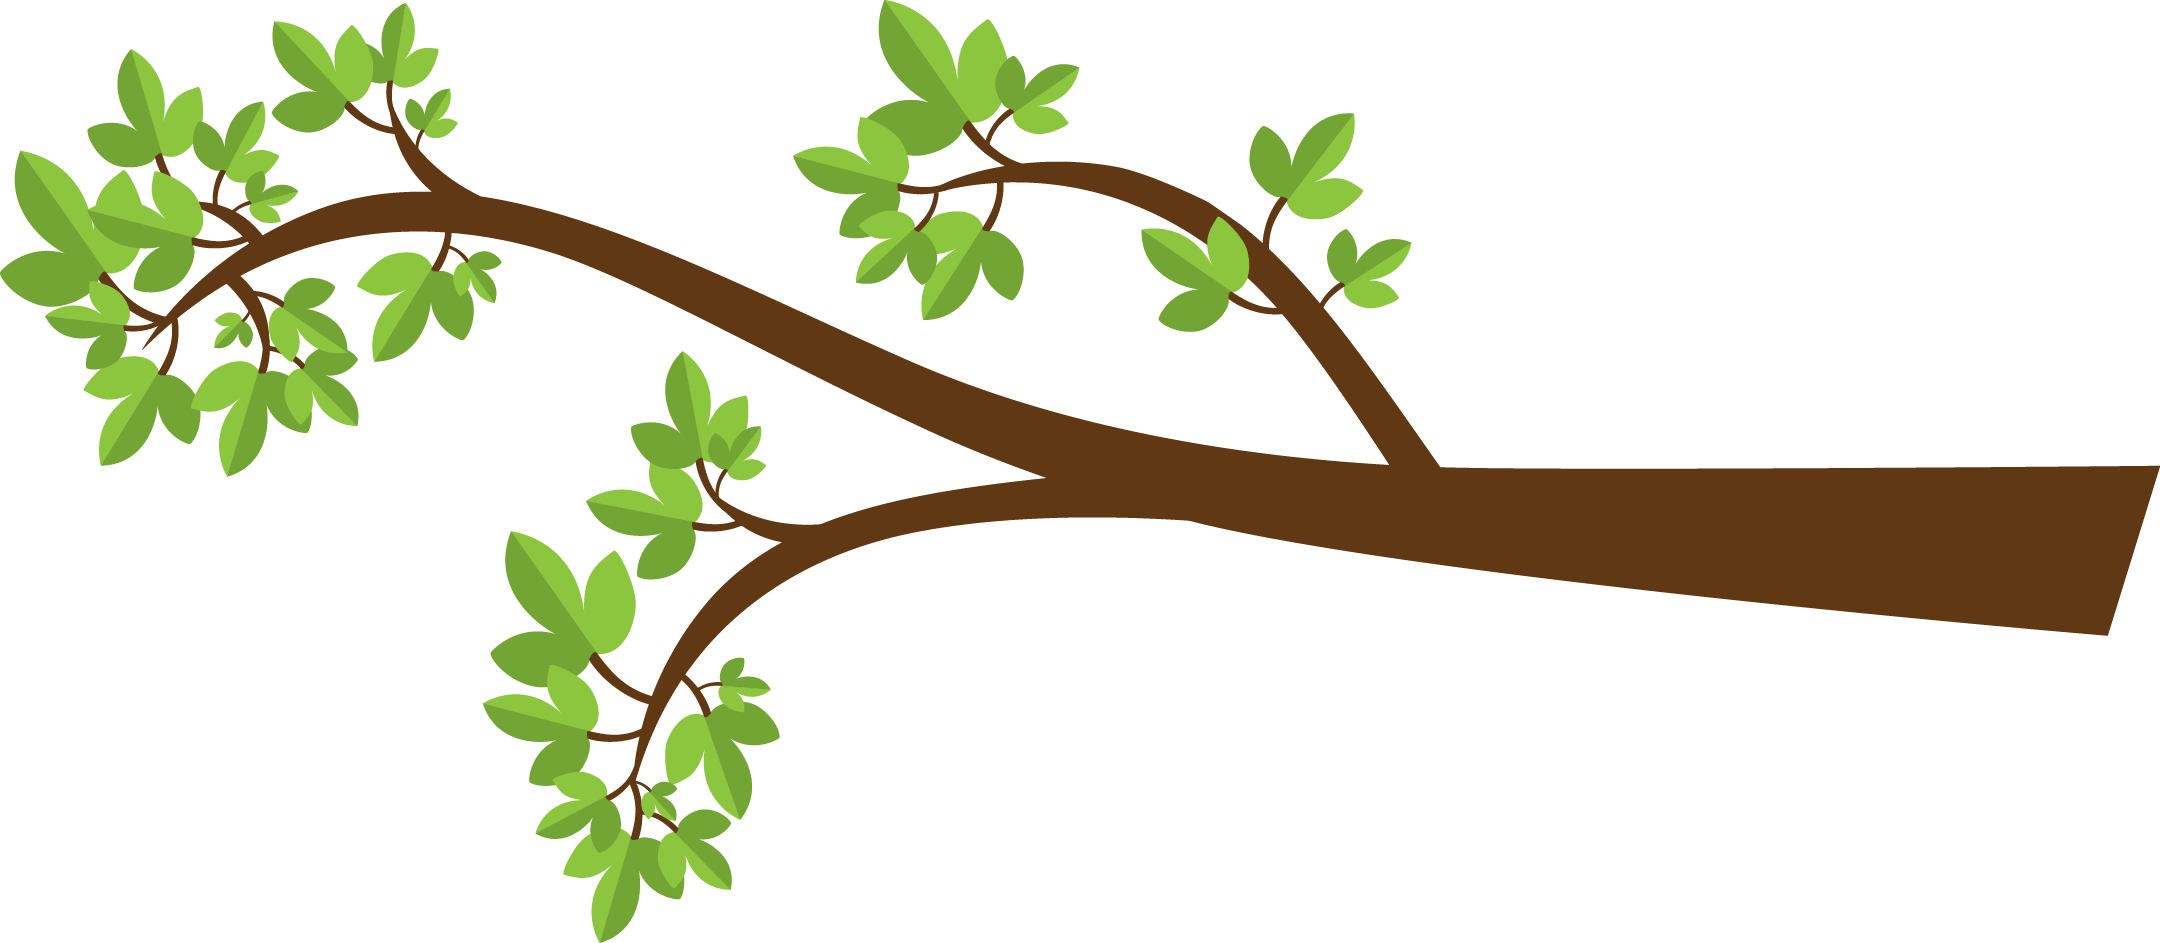 Clipart tree branch silhouette transparent library Image Of Tree Branch - ClipArt Best | Crafty stuff | Pinterest ... transparent library